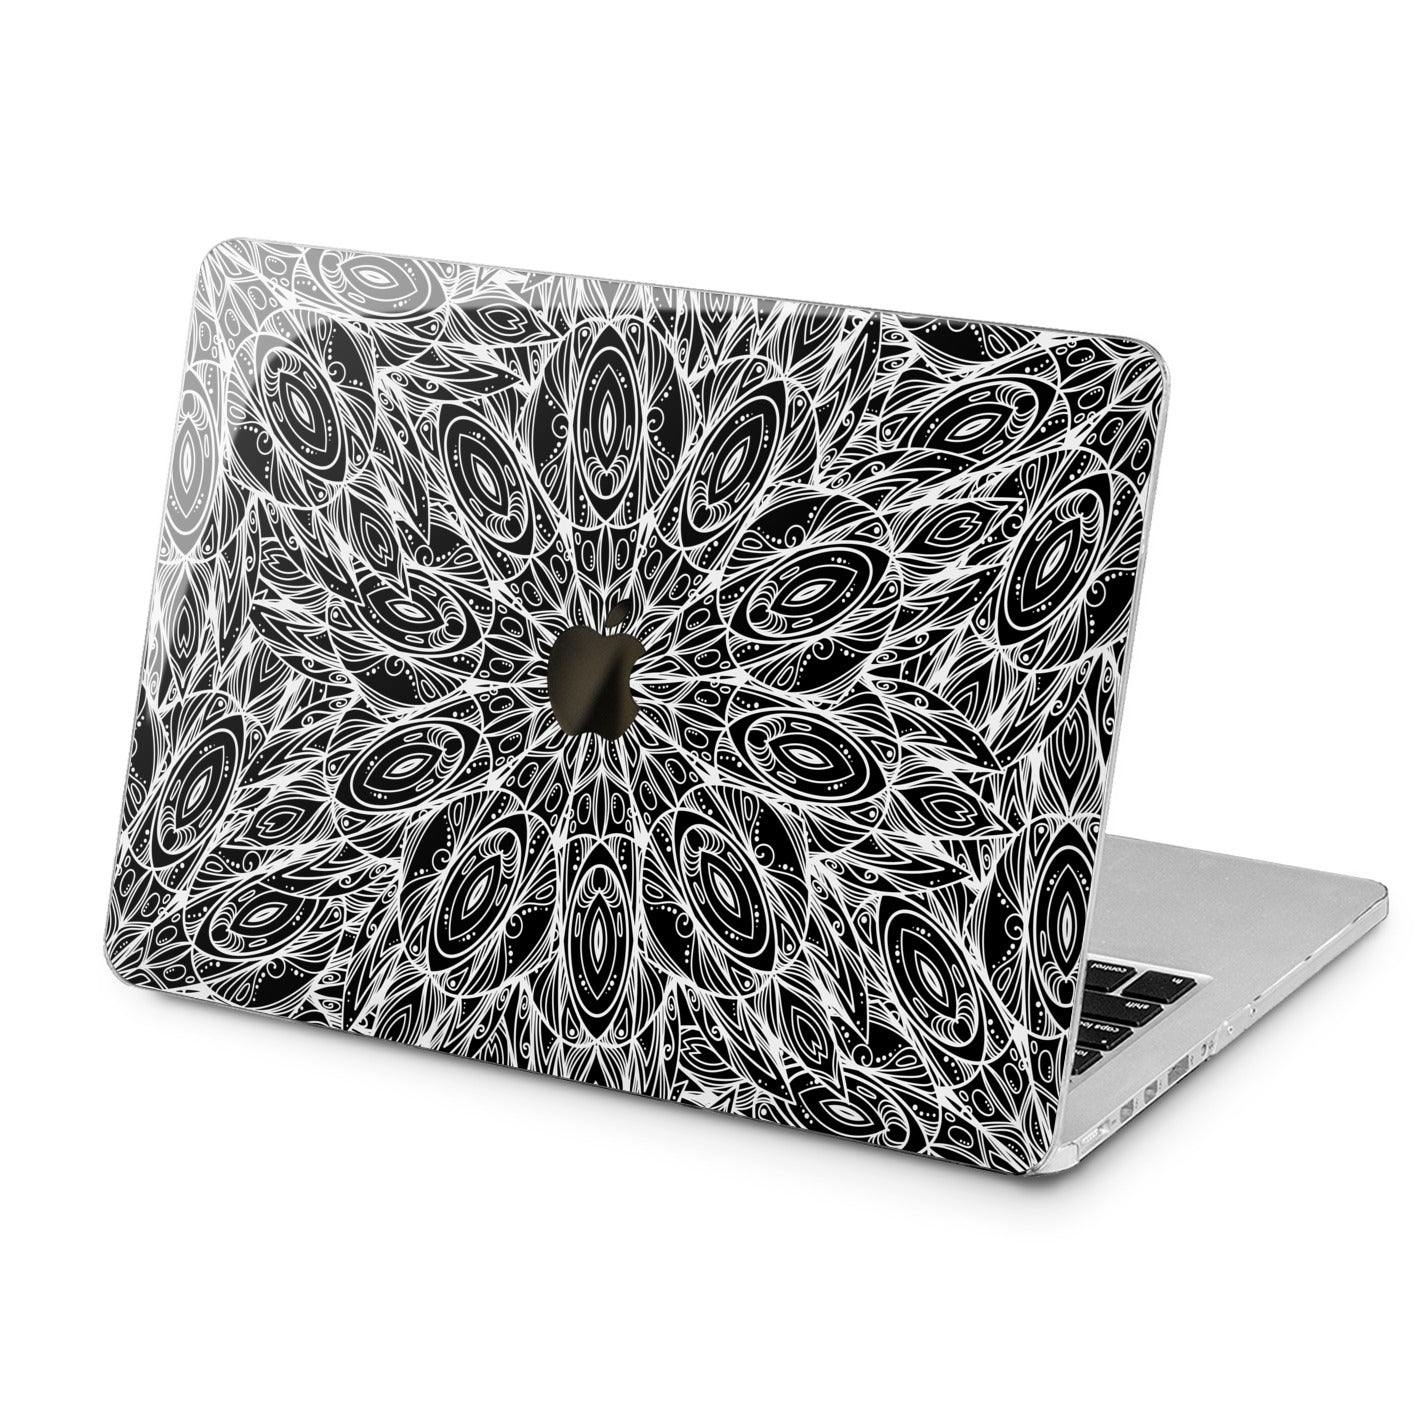 Lex Altern Lex Altern Bohemian Pattern Case for your Laptop Apple Macbook.